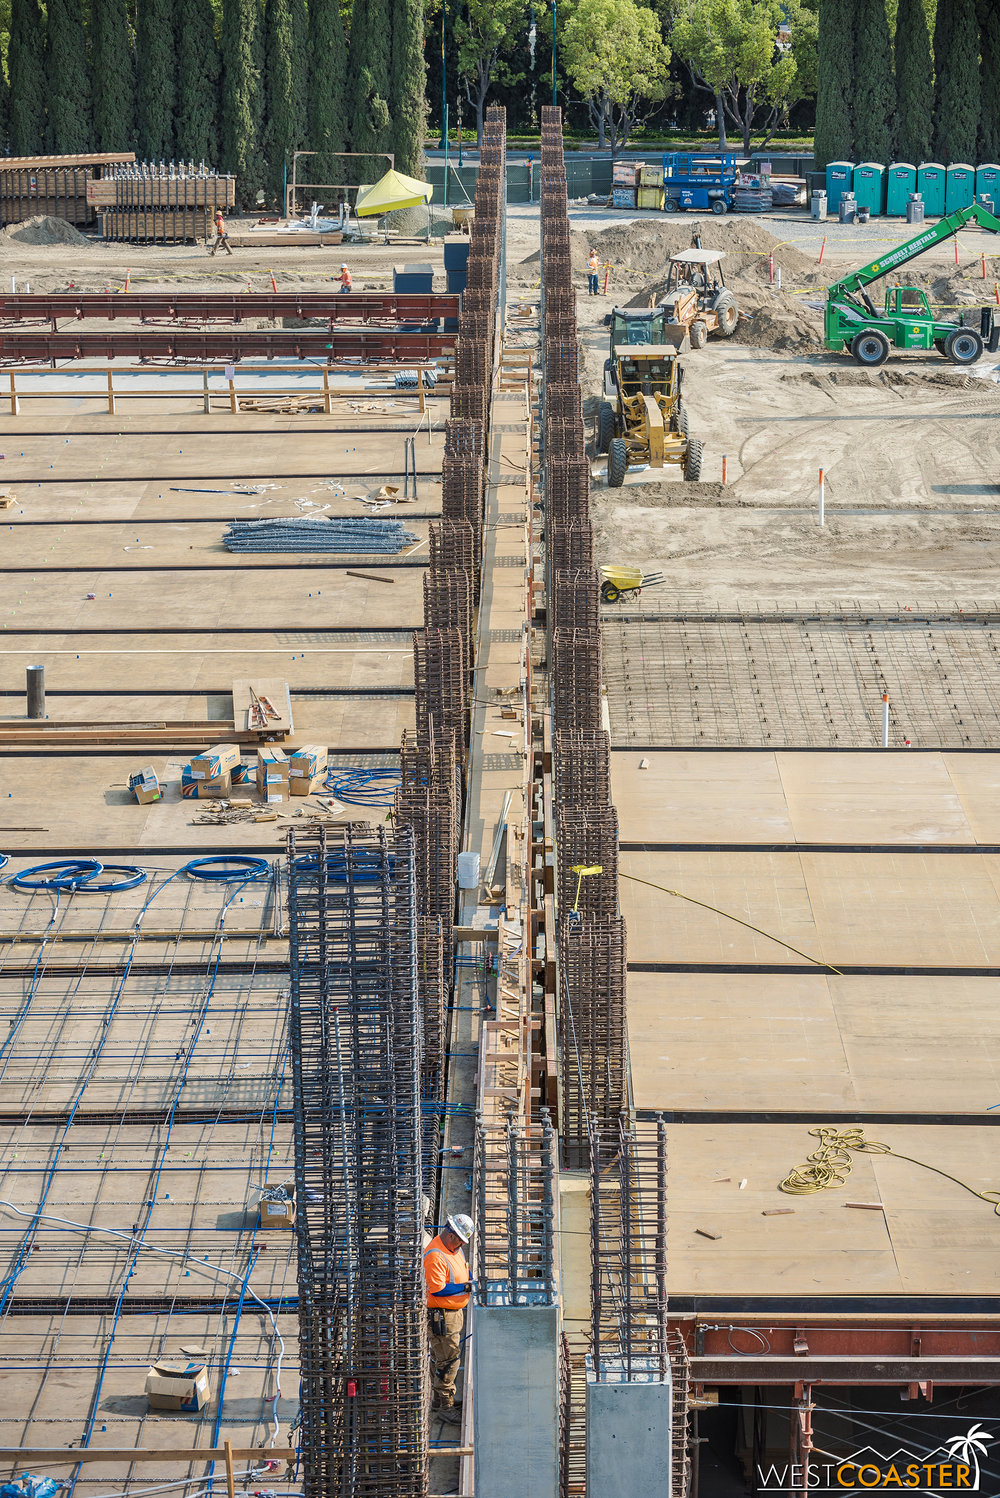 Down the line of the seismic separation again, with more rebar.  Rebar gives concrete reinforcement and helps it behave strongly in tension; the concrete itself is very strong in compression.  Together, they form a durable and flexible structural frame.